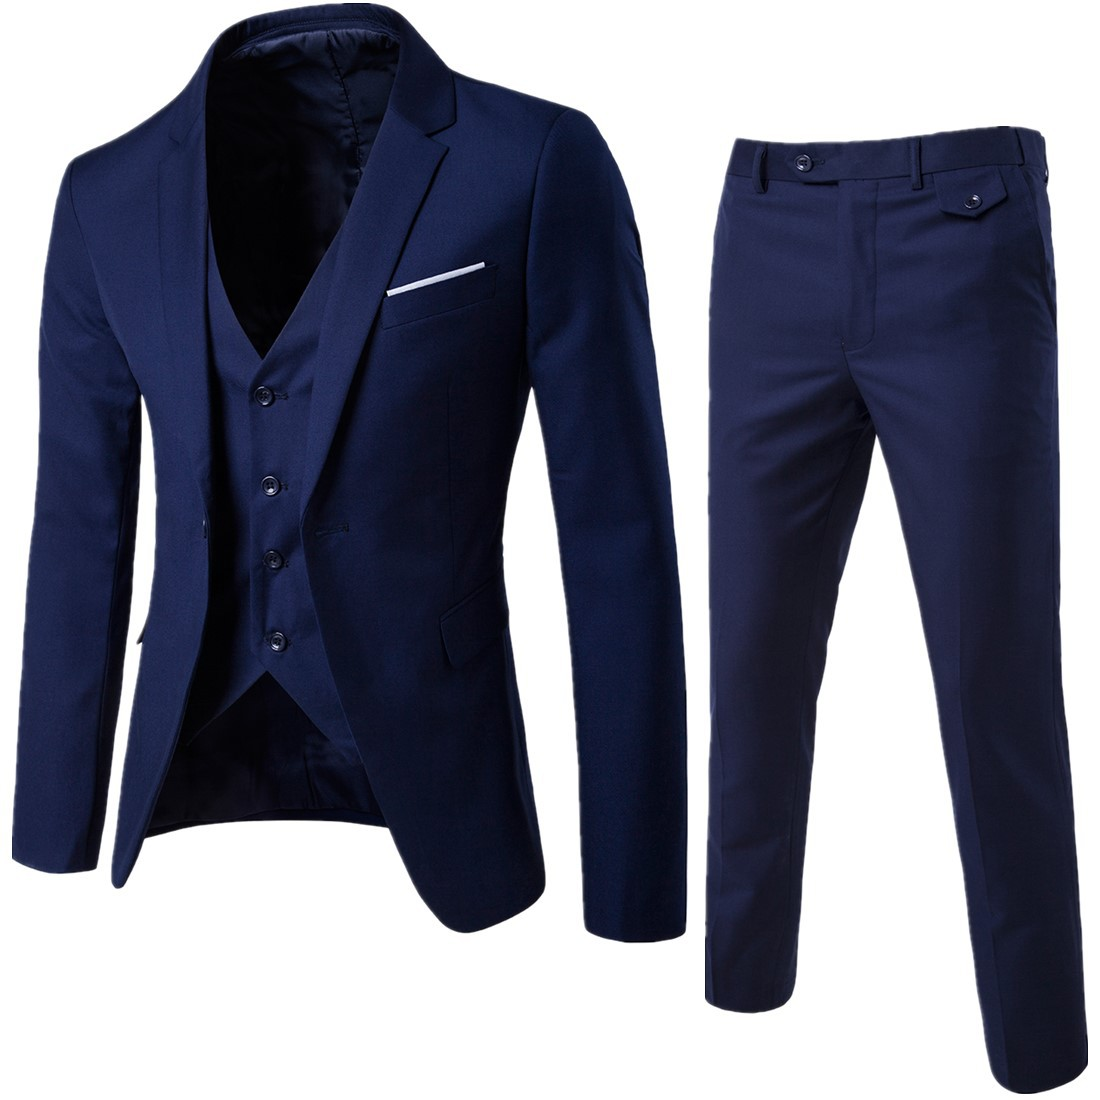 Autumn Clothing Men Korean-style Slim Fit Suit Men's Large Size Casual Going To Work Groom Formal Dress Suit Three-piece Set Fas